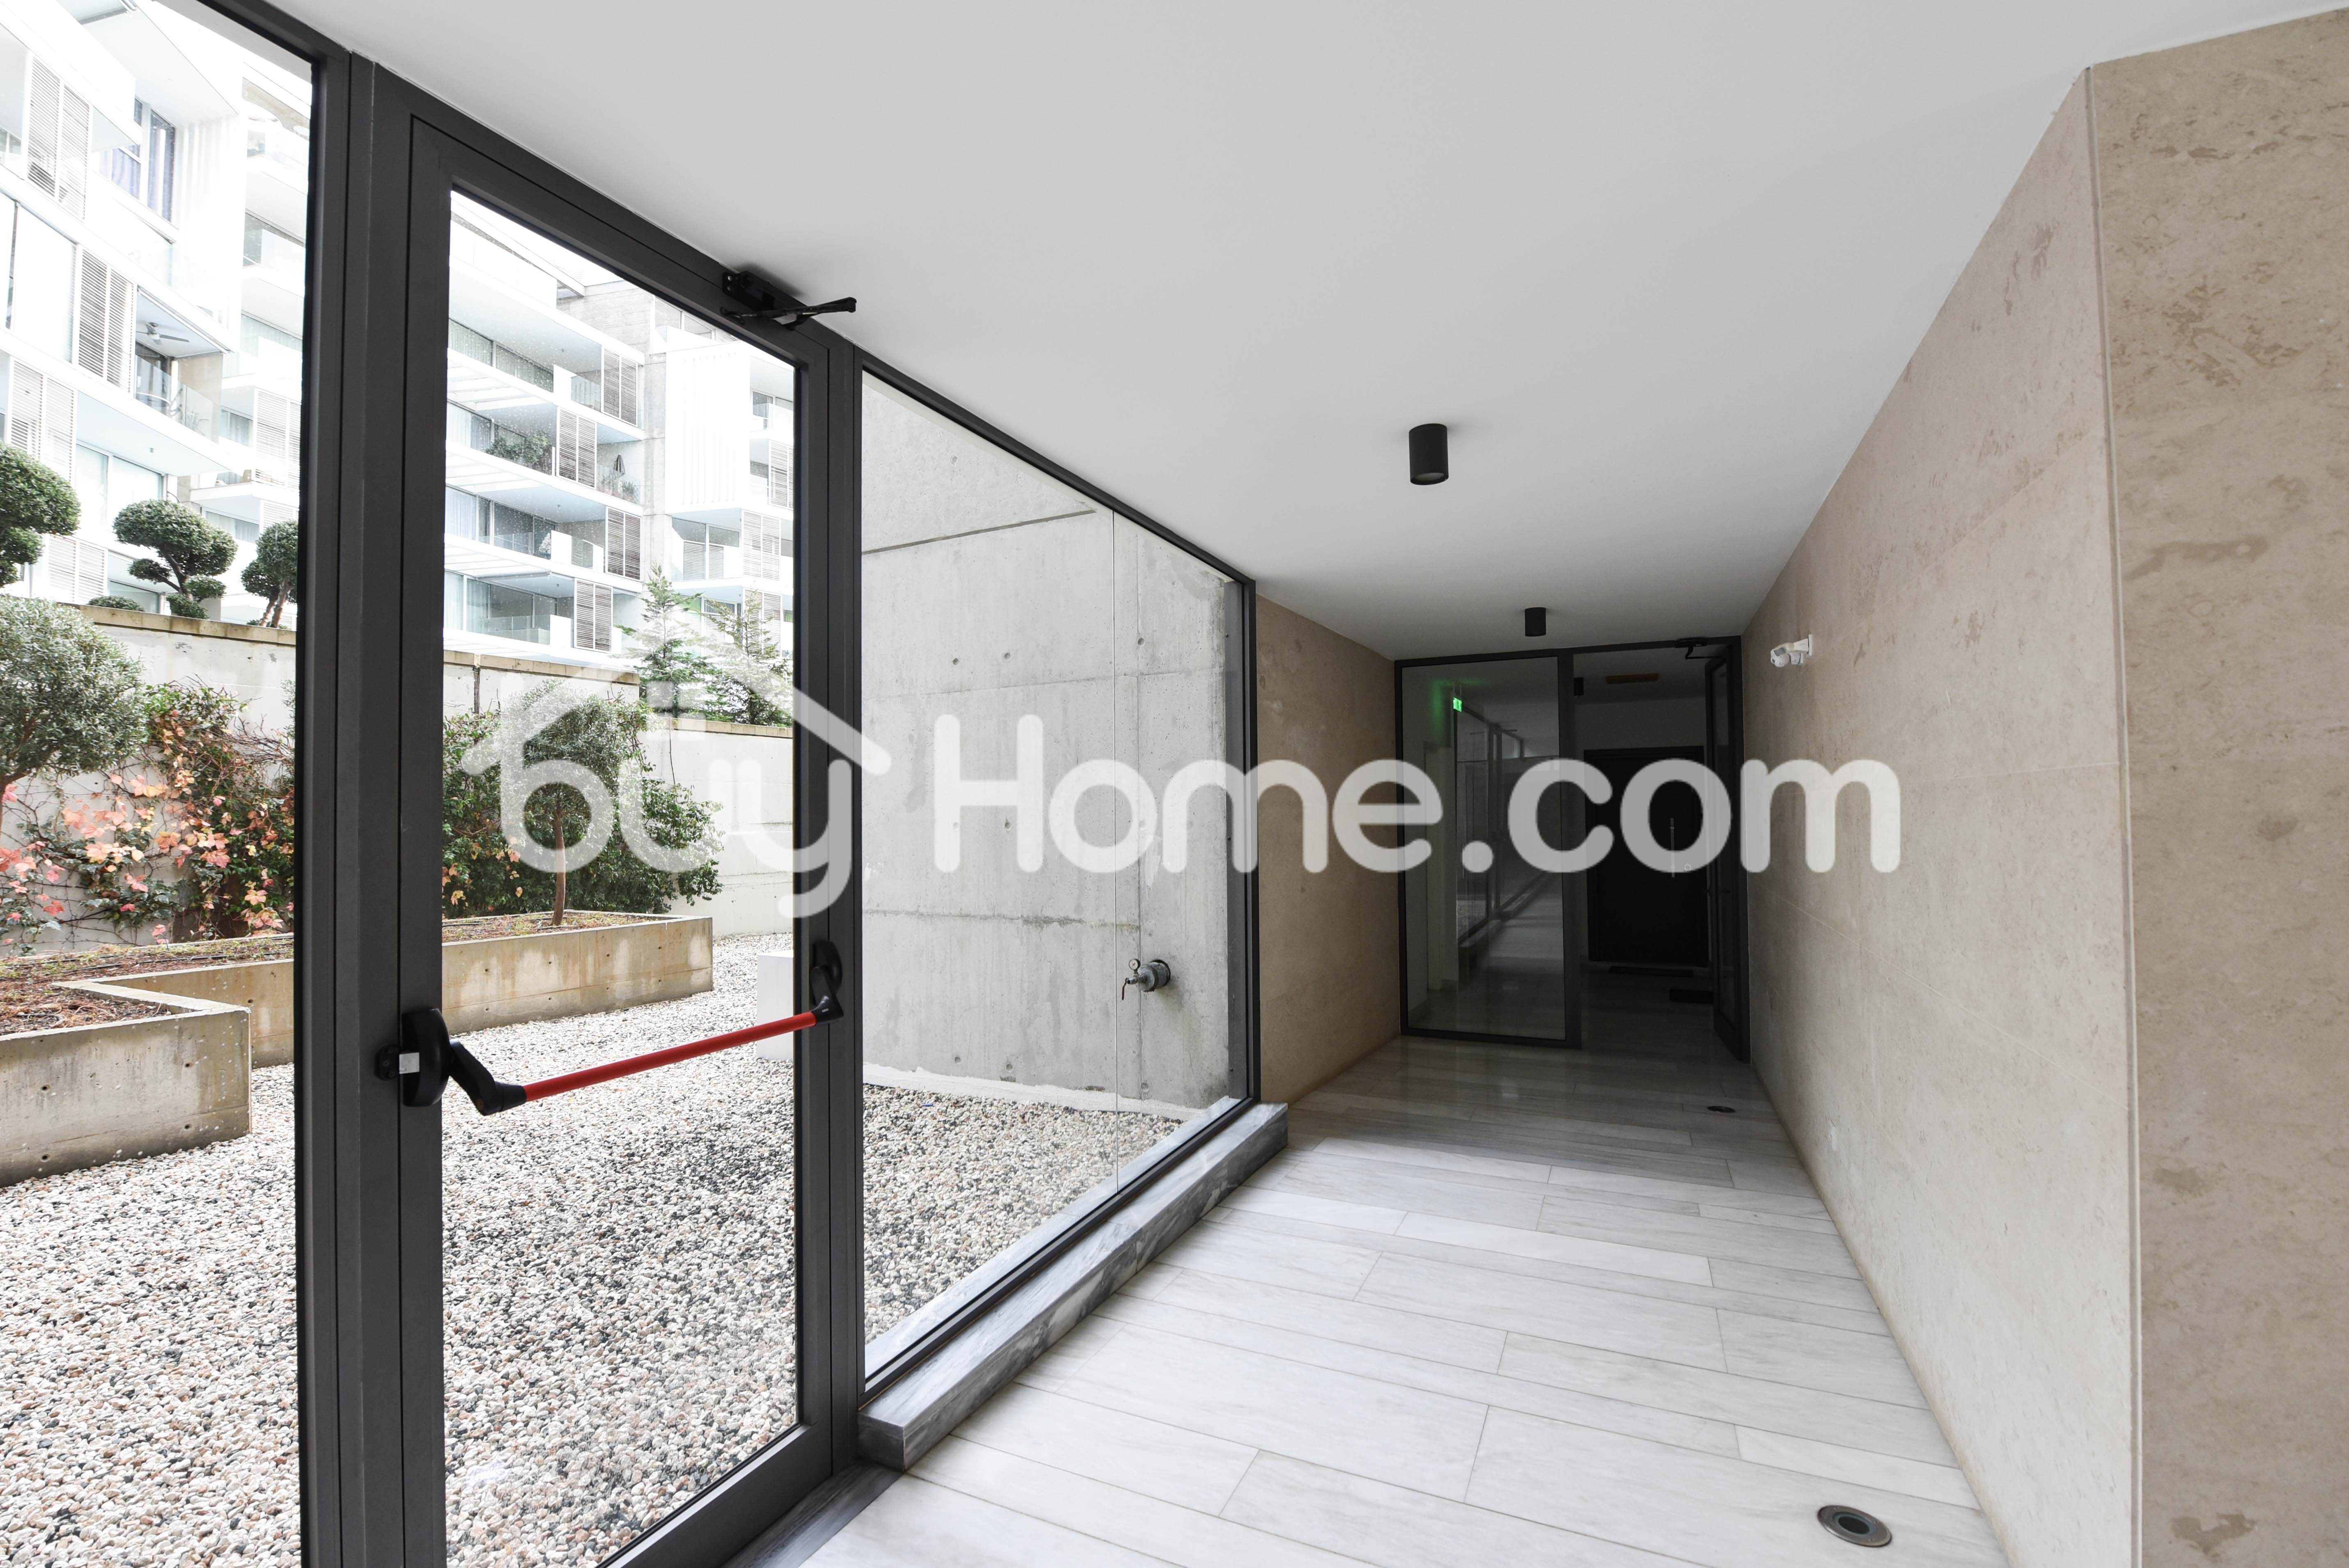 2 Bed Apt In Neapolis | BuyHome